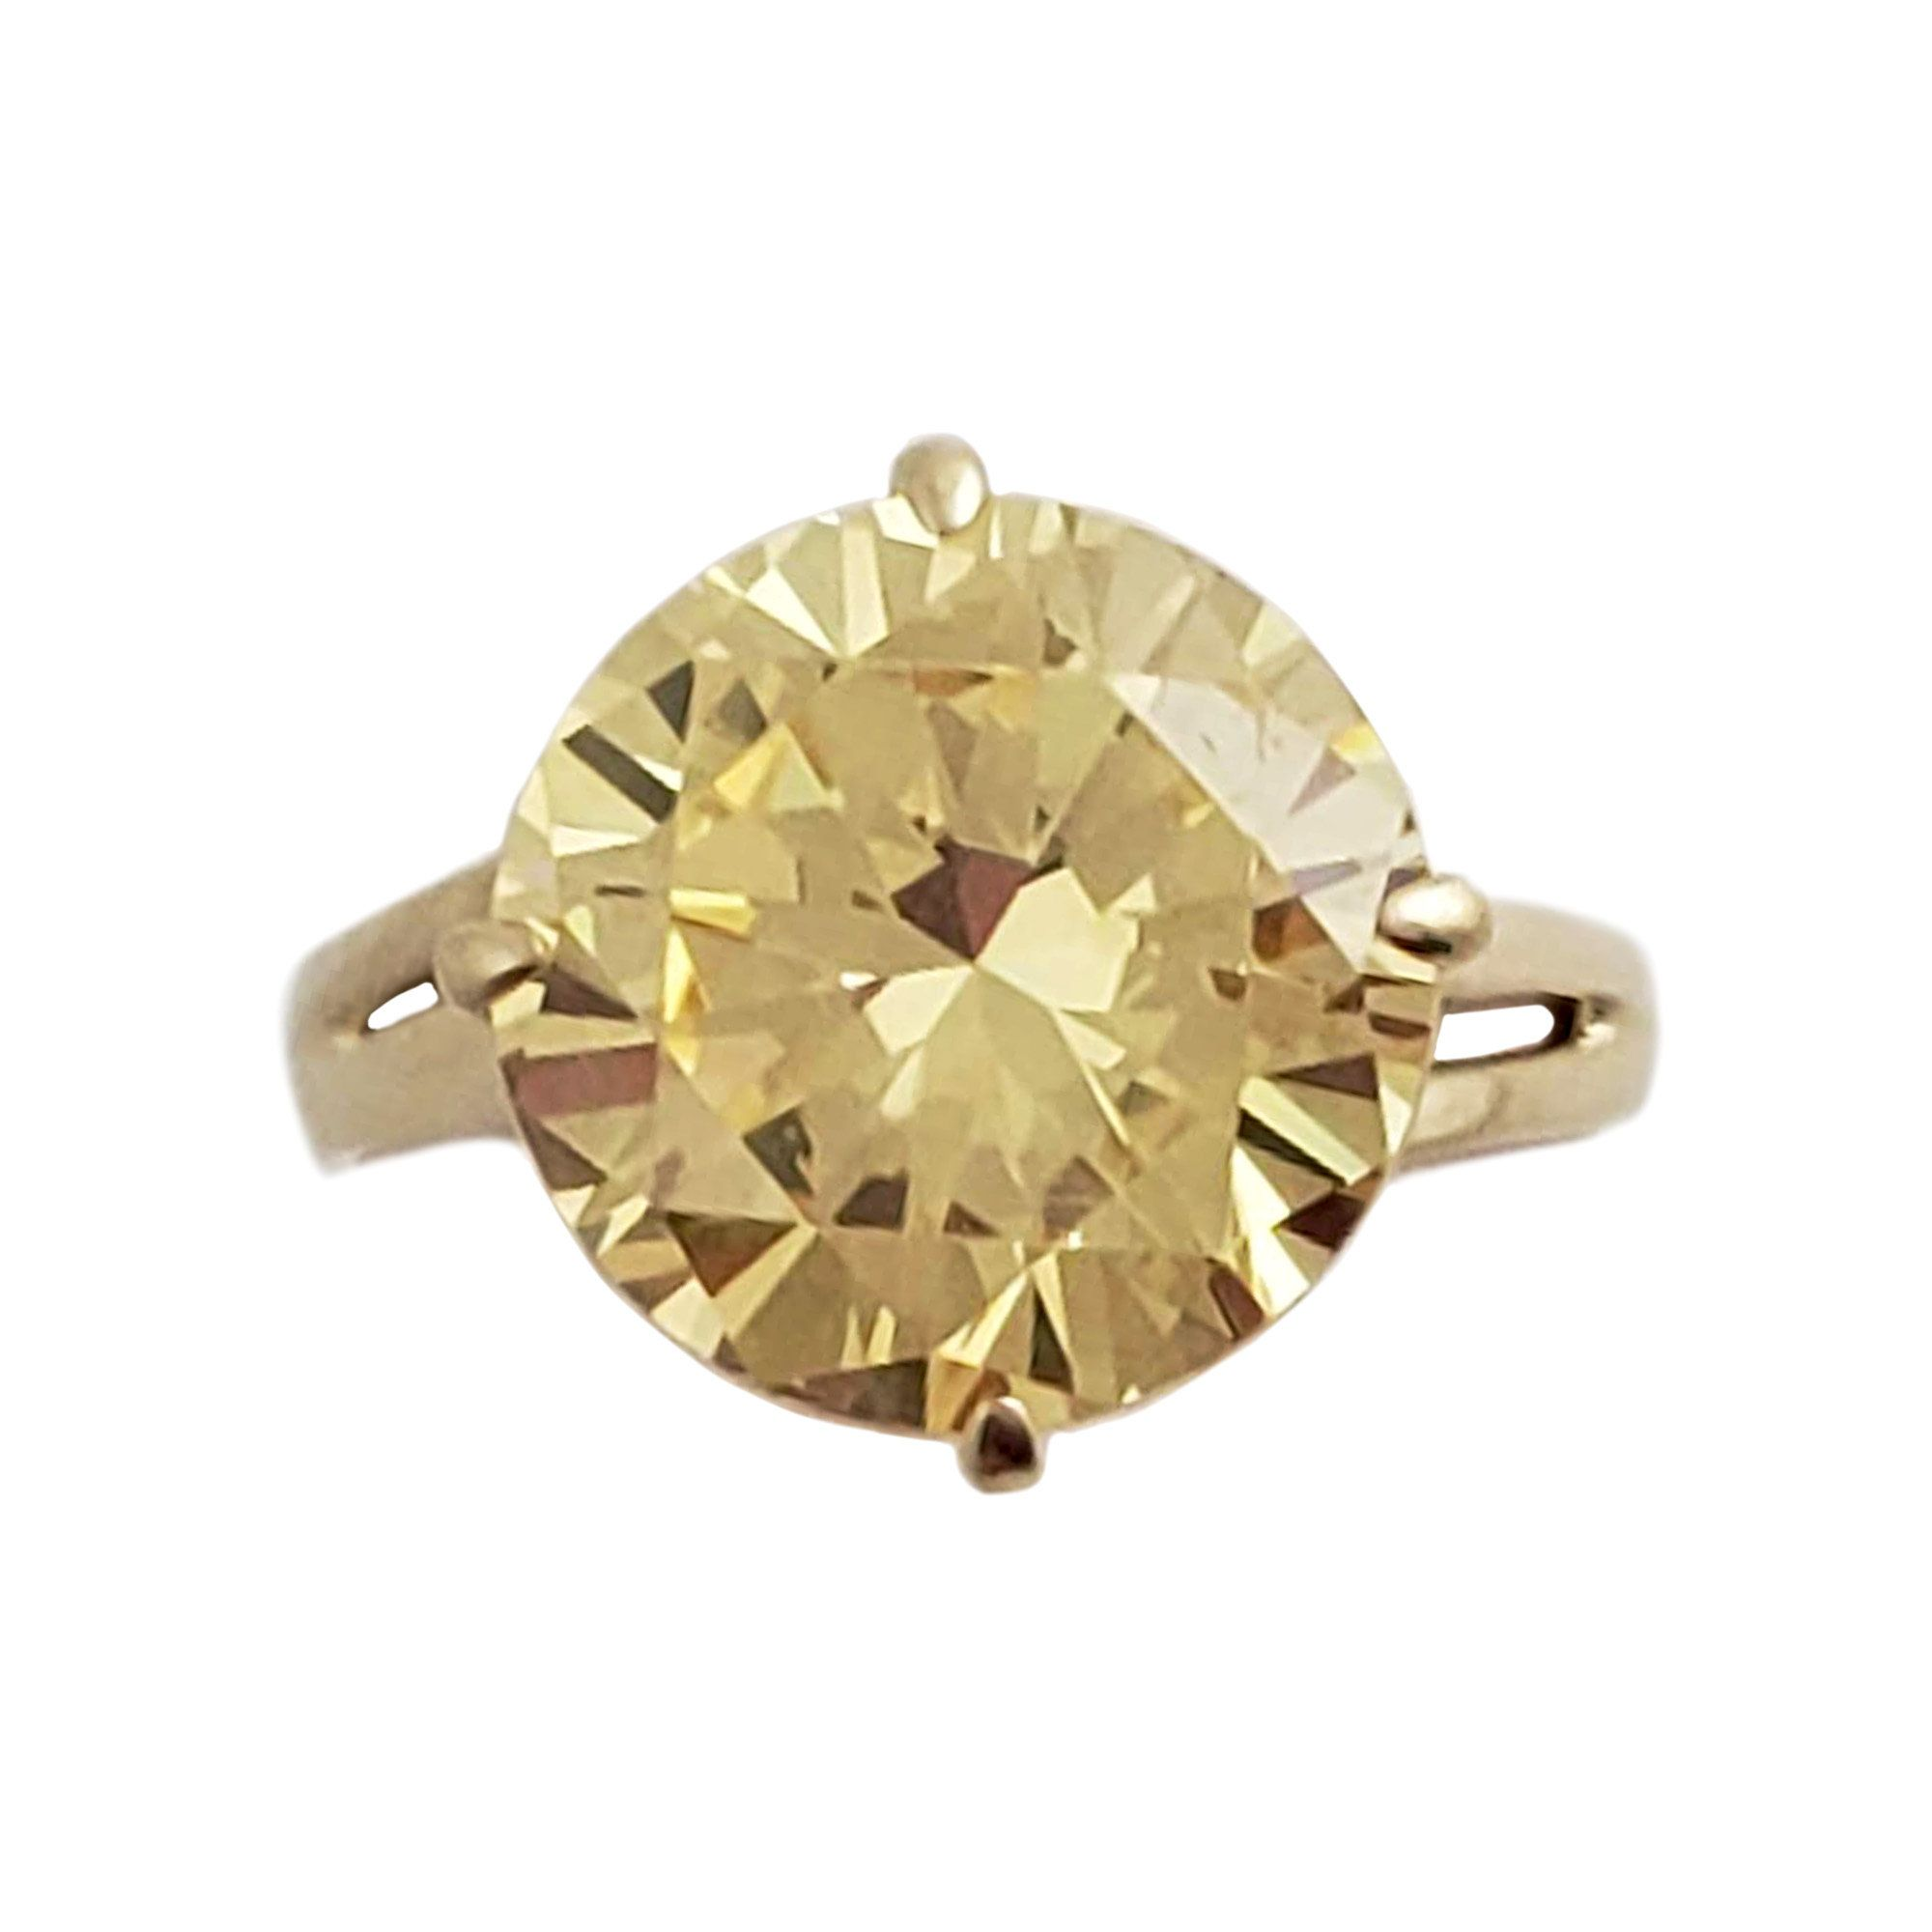 10k Gold And Cz Ring Light Yellow Round Gemstone Size 7 25 In 2020 Silver Rings Gold Rings Gemstones